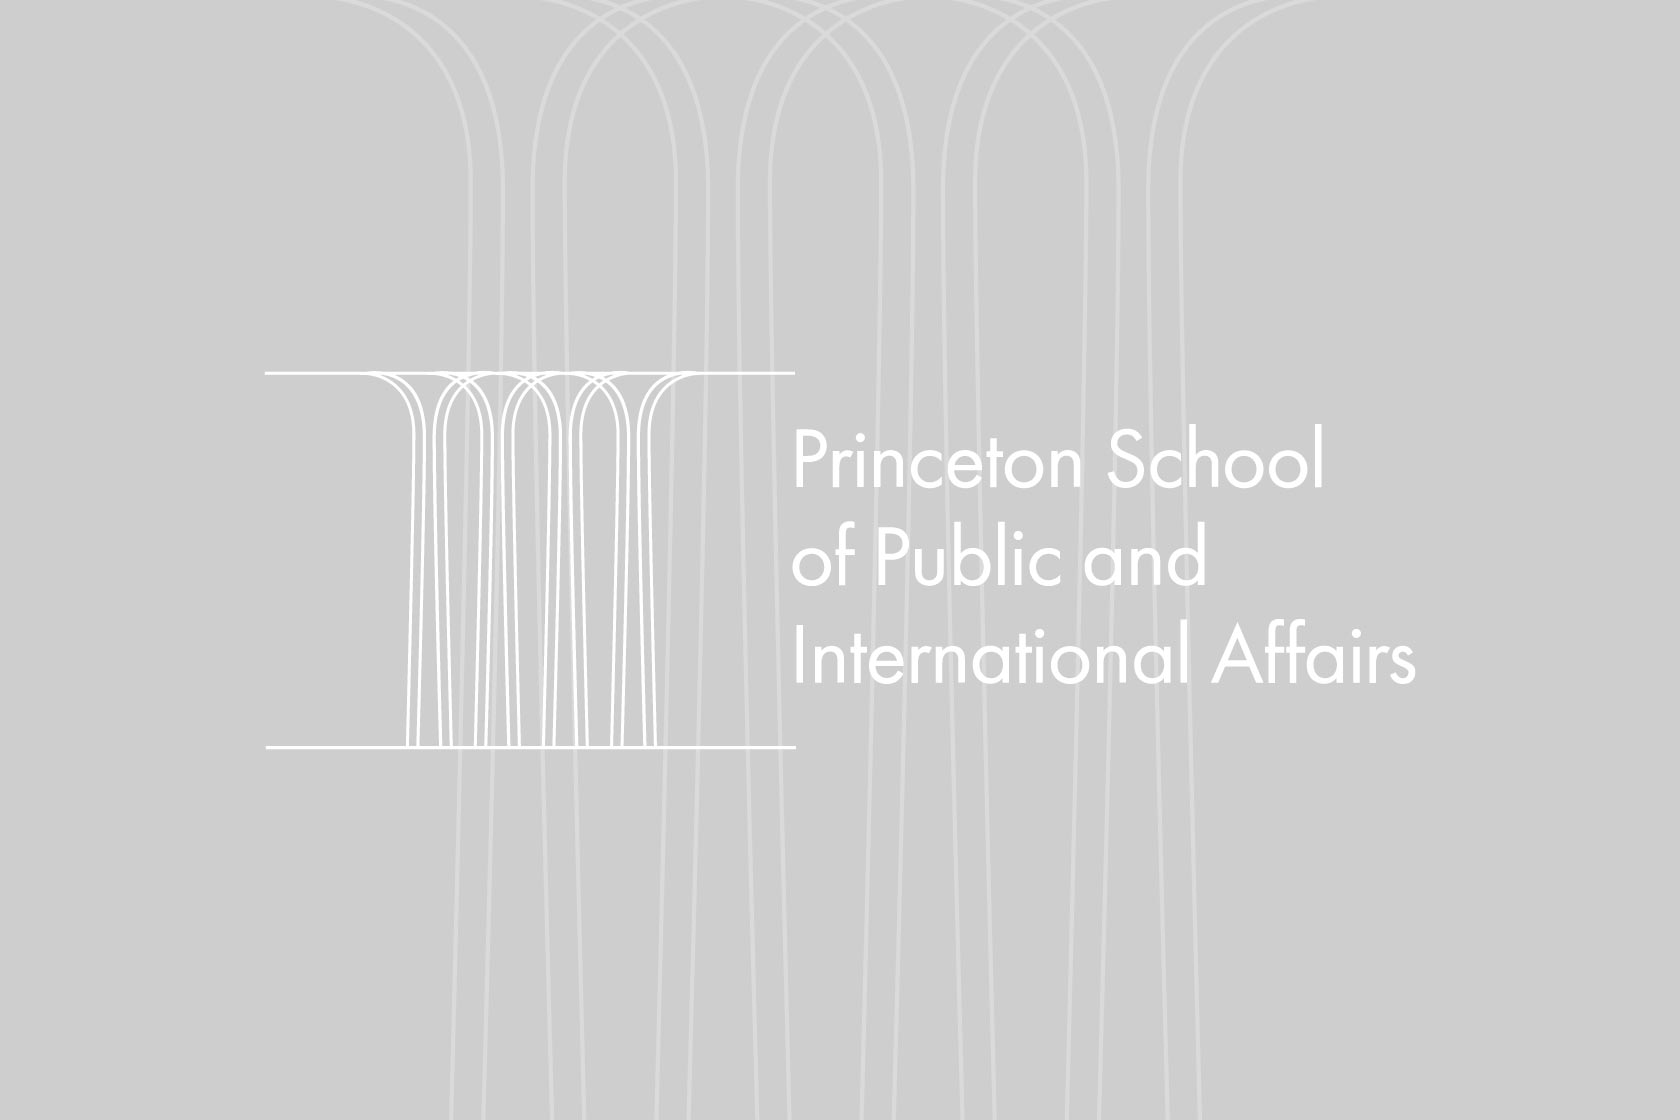 Princeton School of Public and International Affairs logo on a grey background.